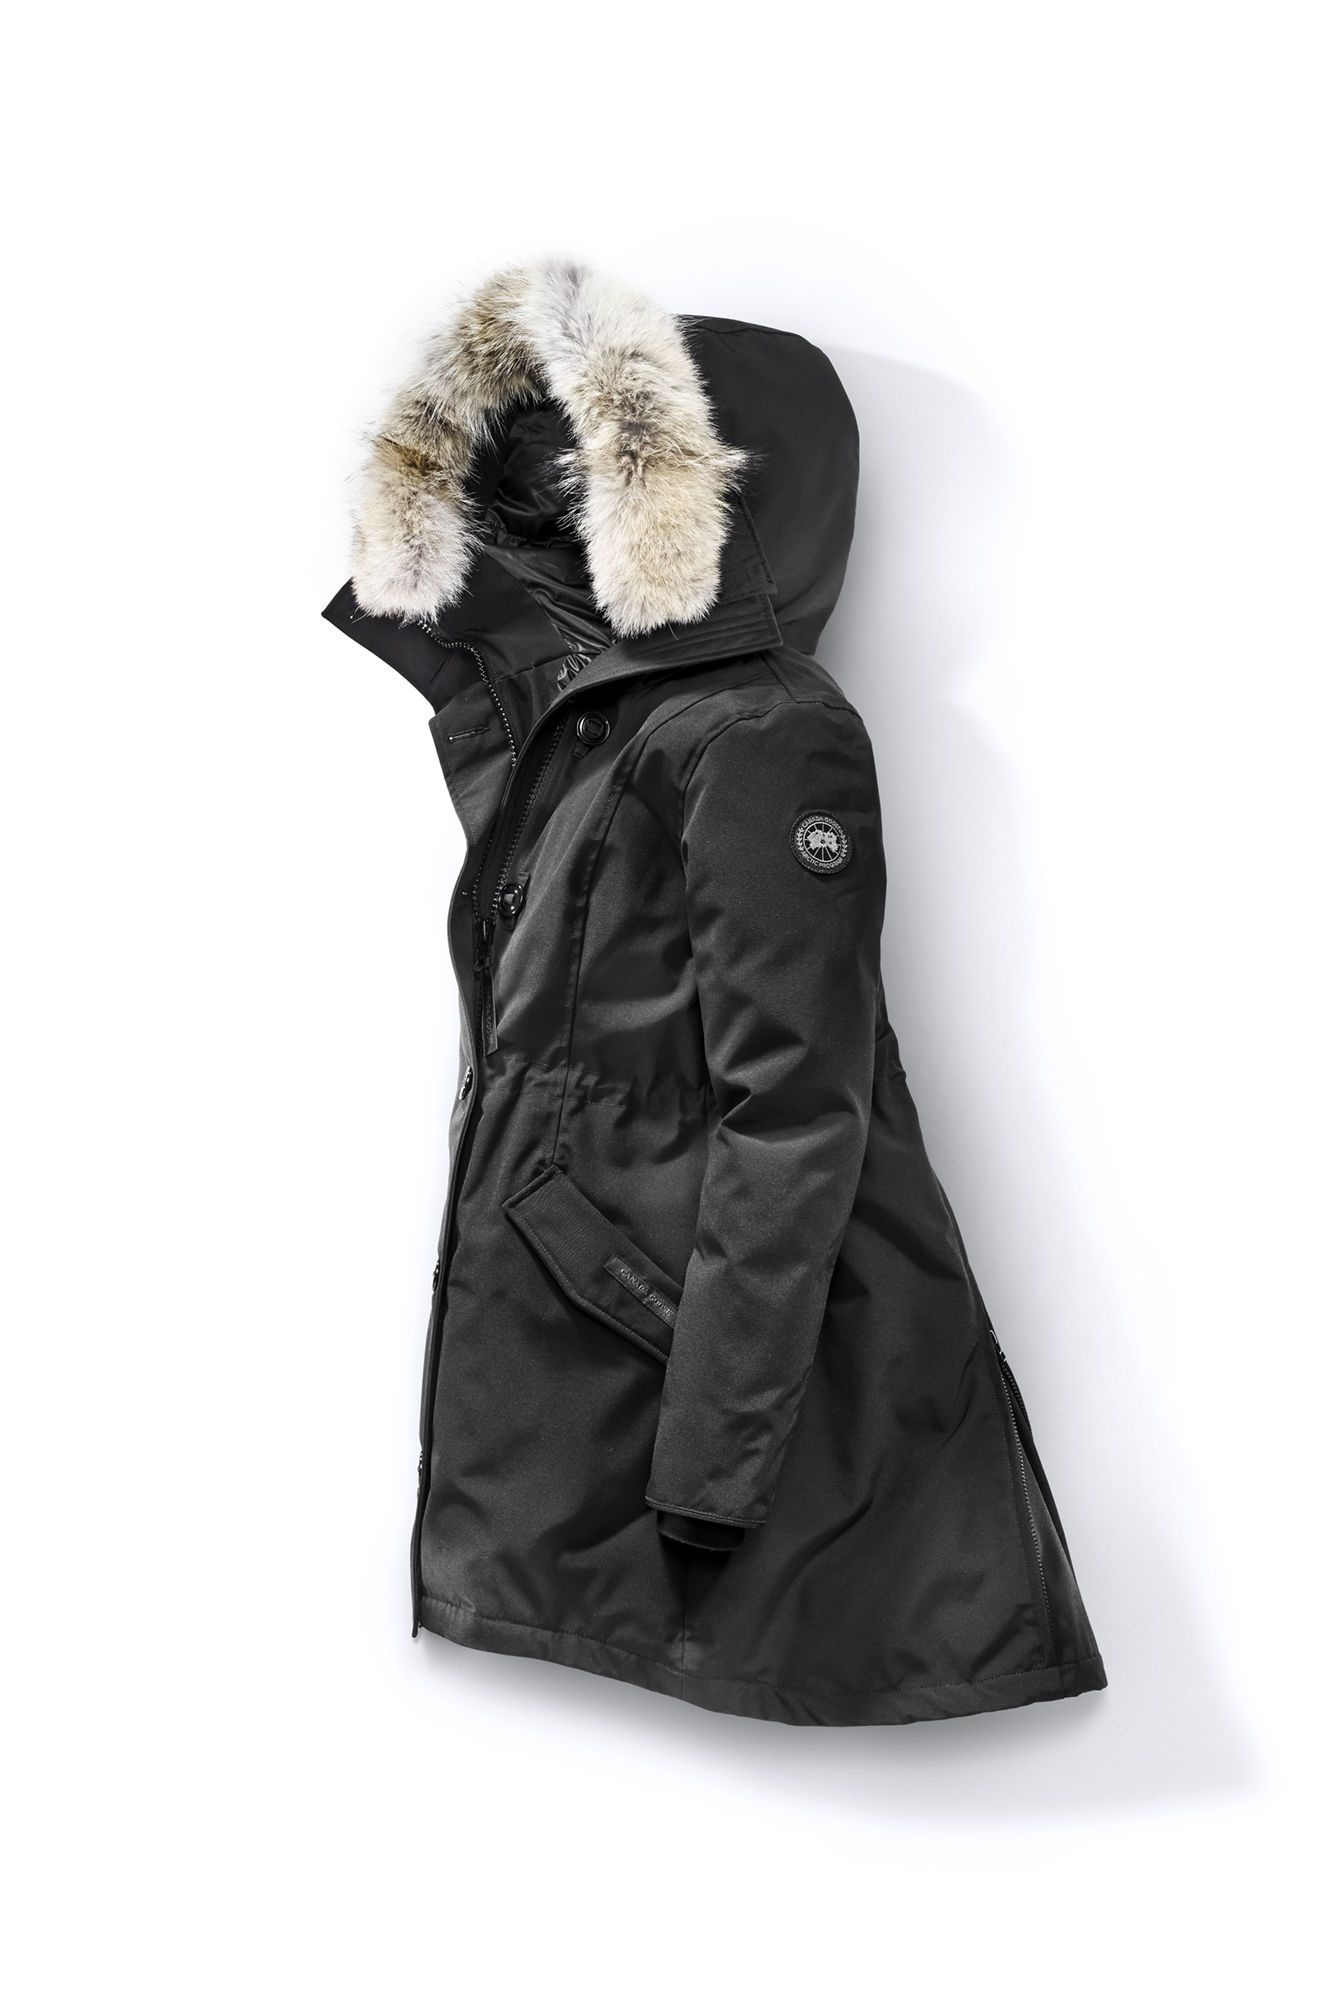 Rossclair Parka Black Label